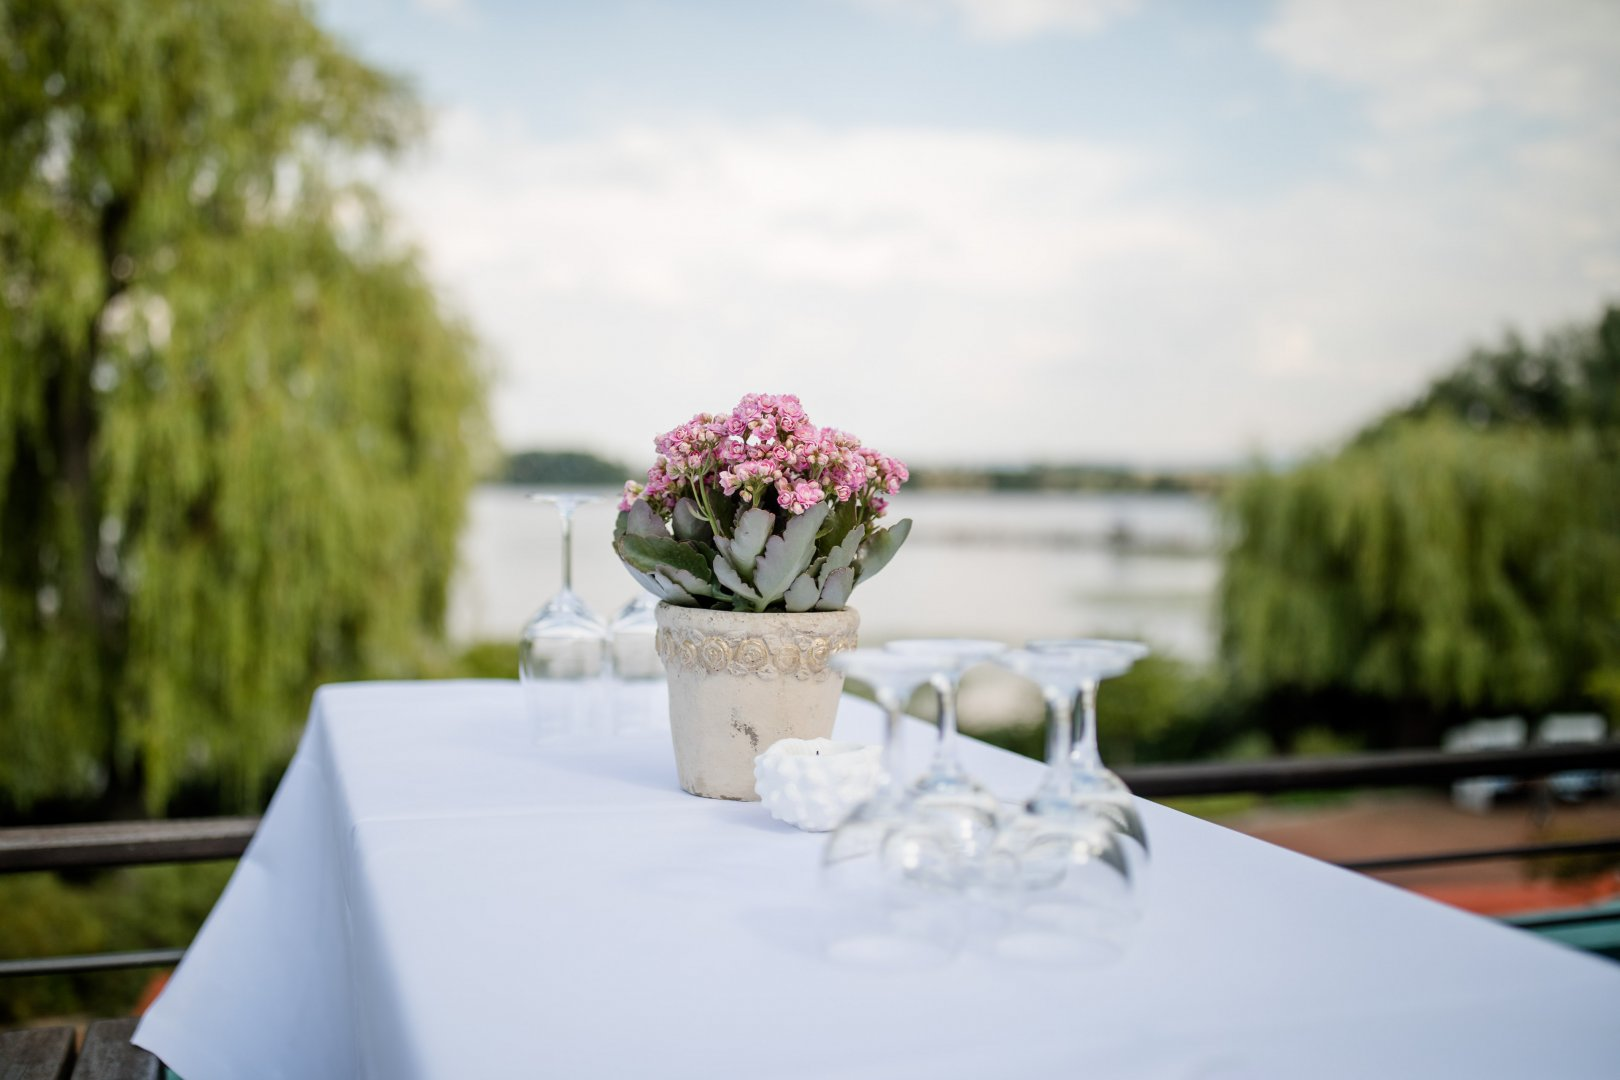 Photograph Flower Pink Table Centrepiece Floral design Flower Arranging Plant Bouquet Floristry Event Tablecloth Ceremony Tableware Rehearsal dinner Furniture Wedding Hydrangea Petal Backyard Wildflower Party Restaurant